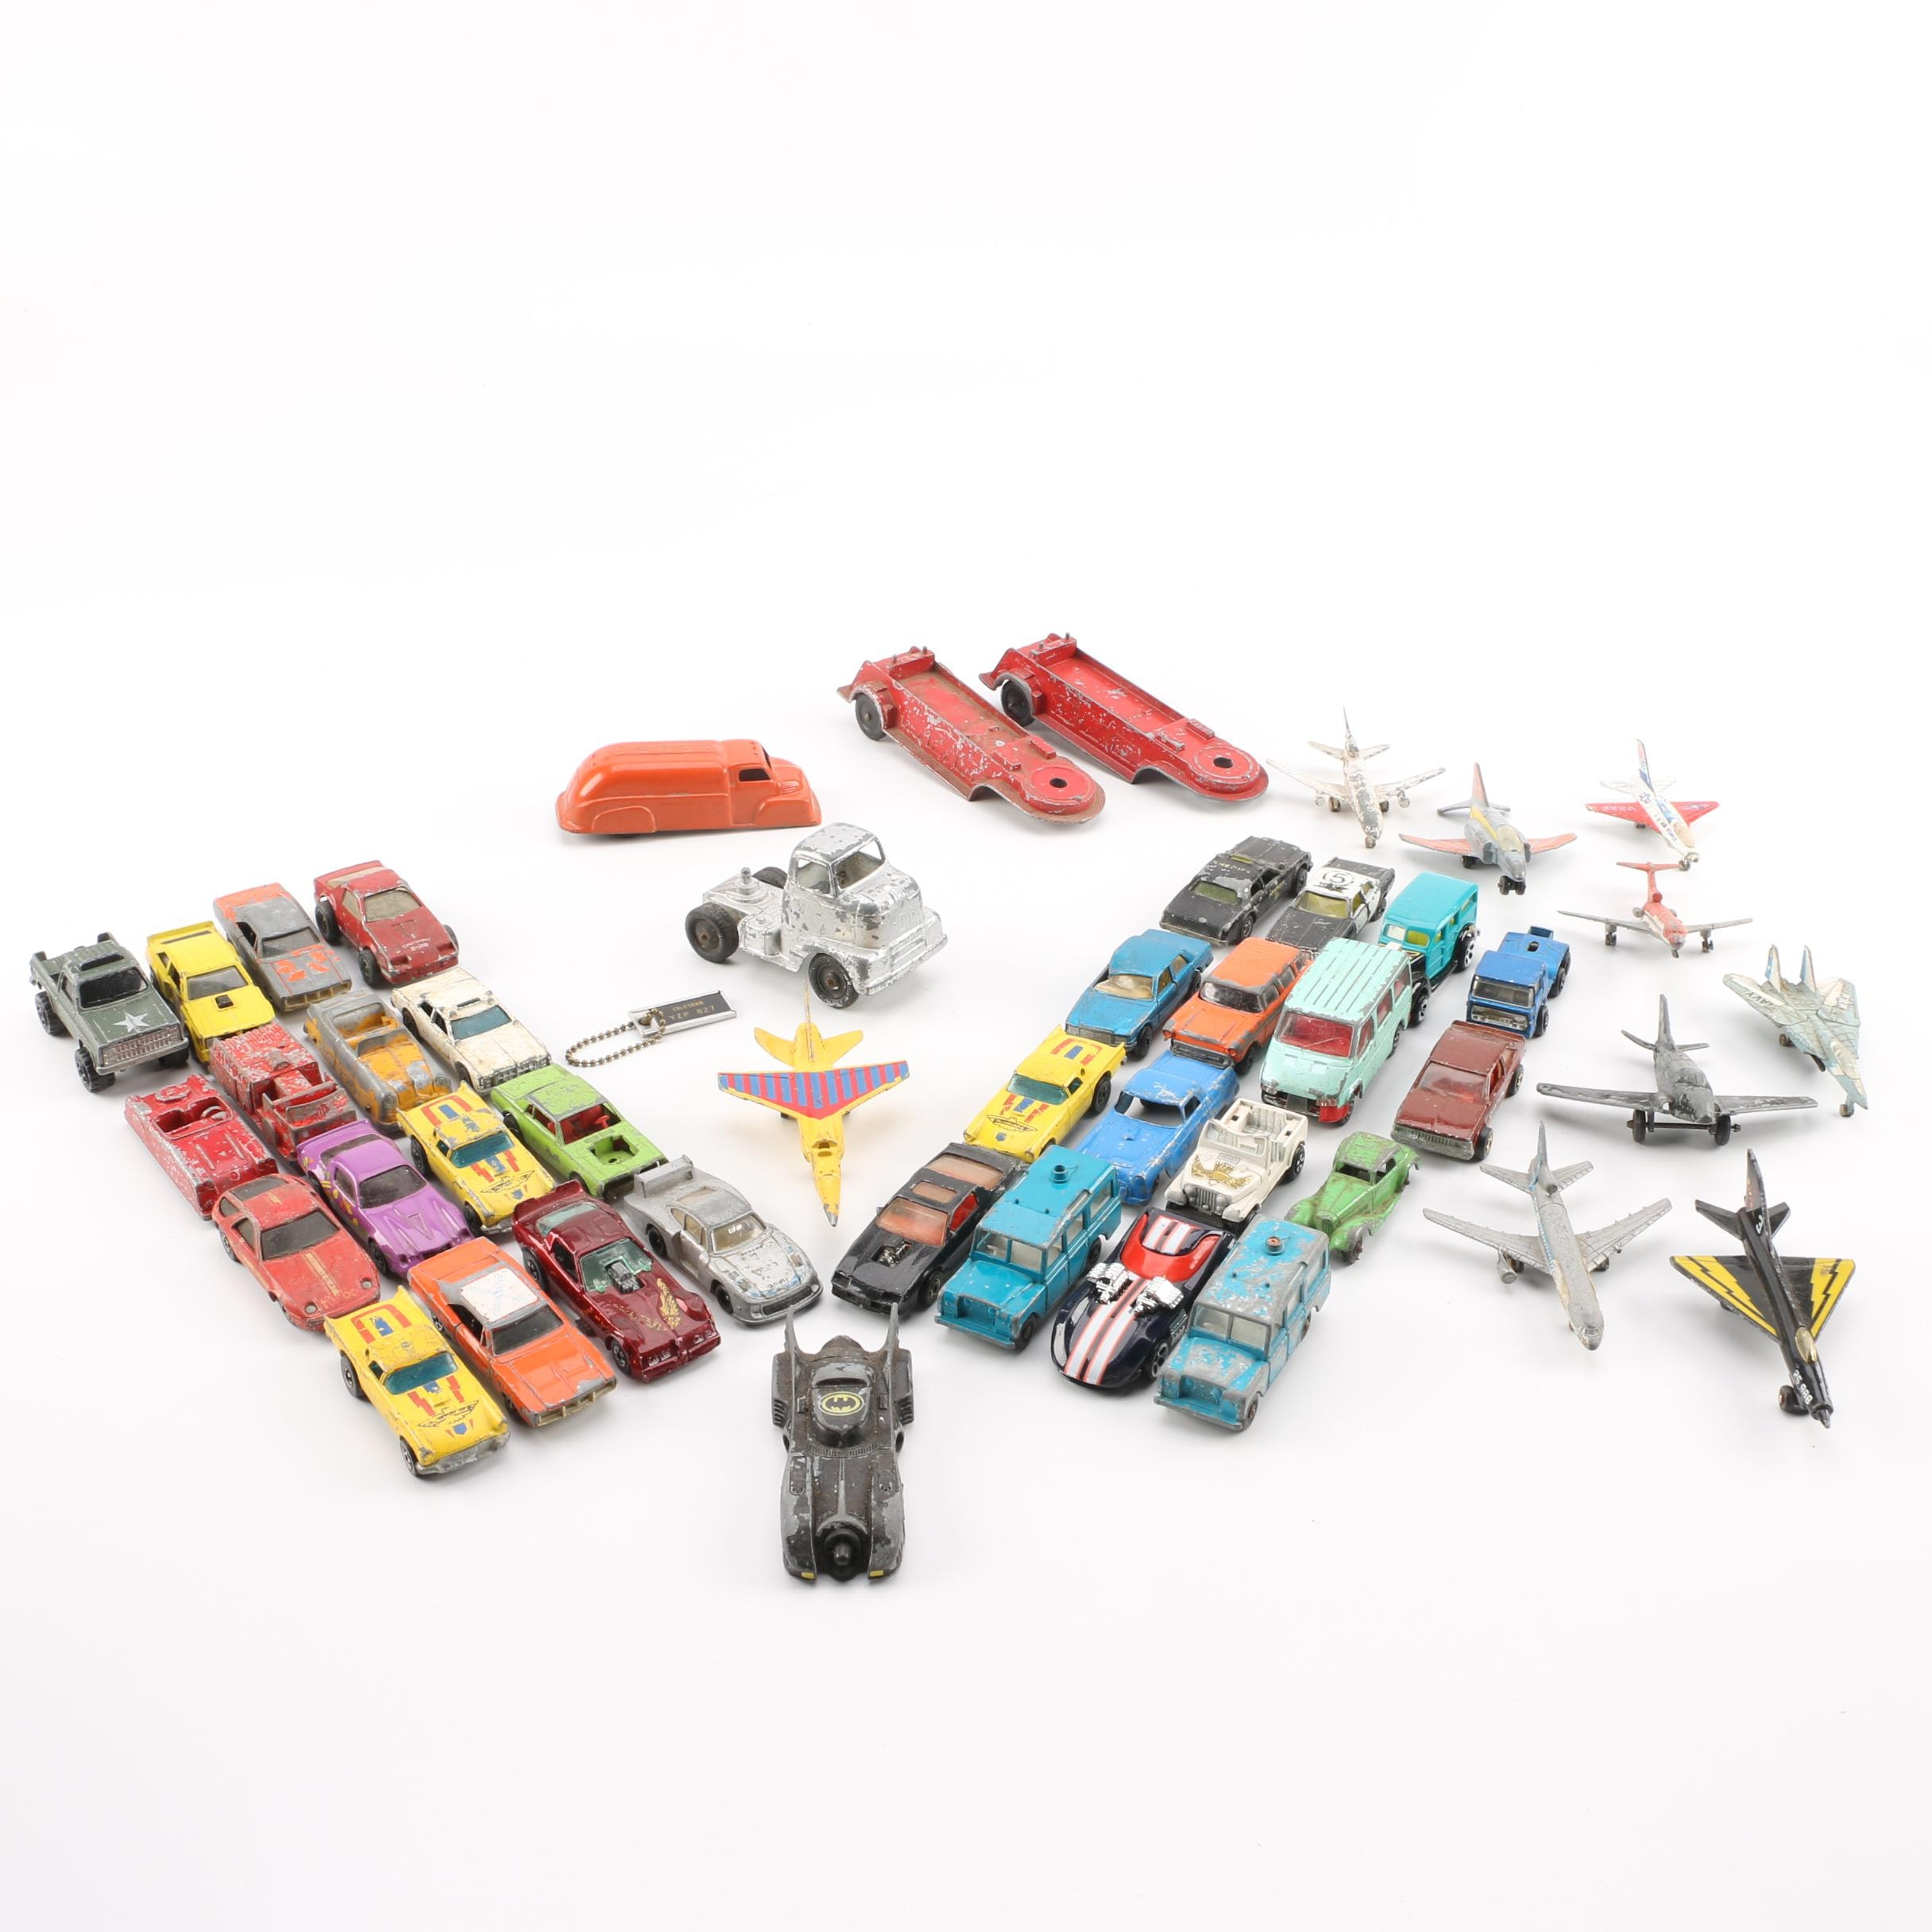 Vintage Die-Cast Cars, Trucks, and Planes